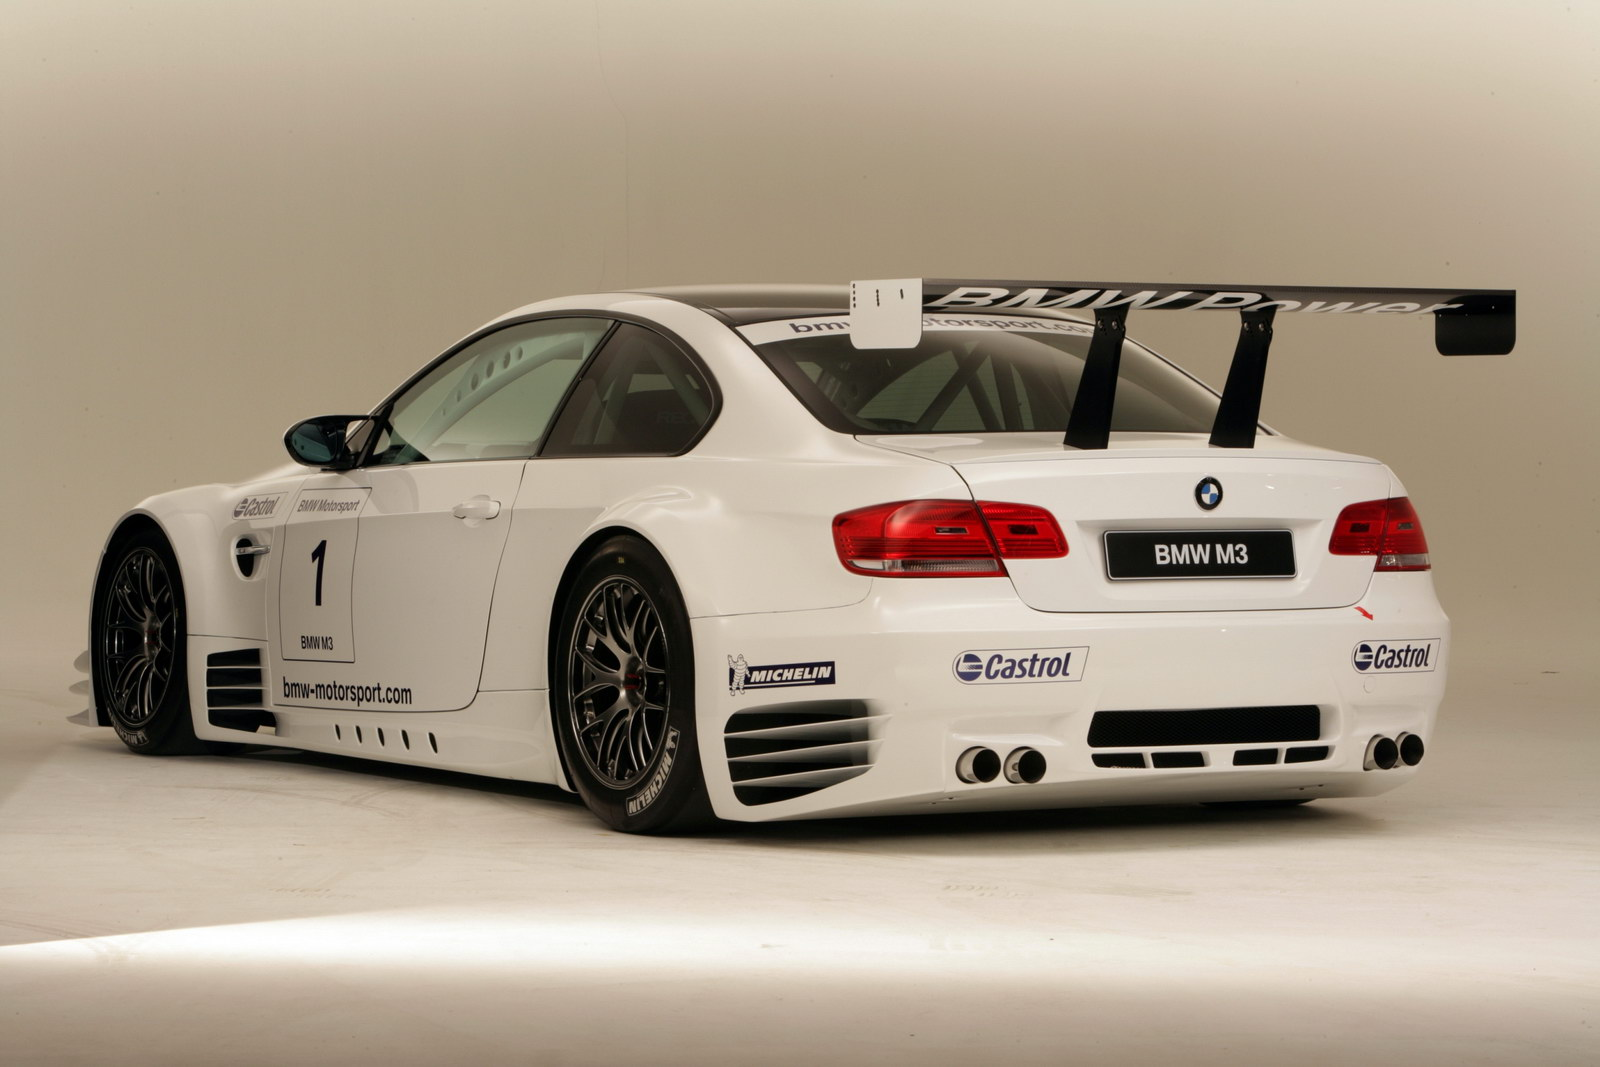 BMW M3 Race Version Wallpaper For Iphone Wallpaper